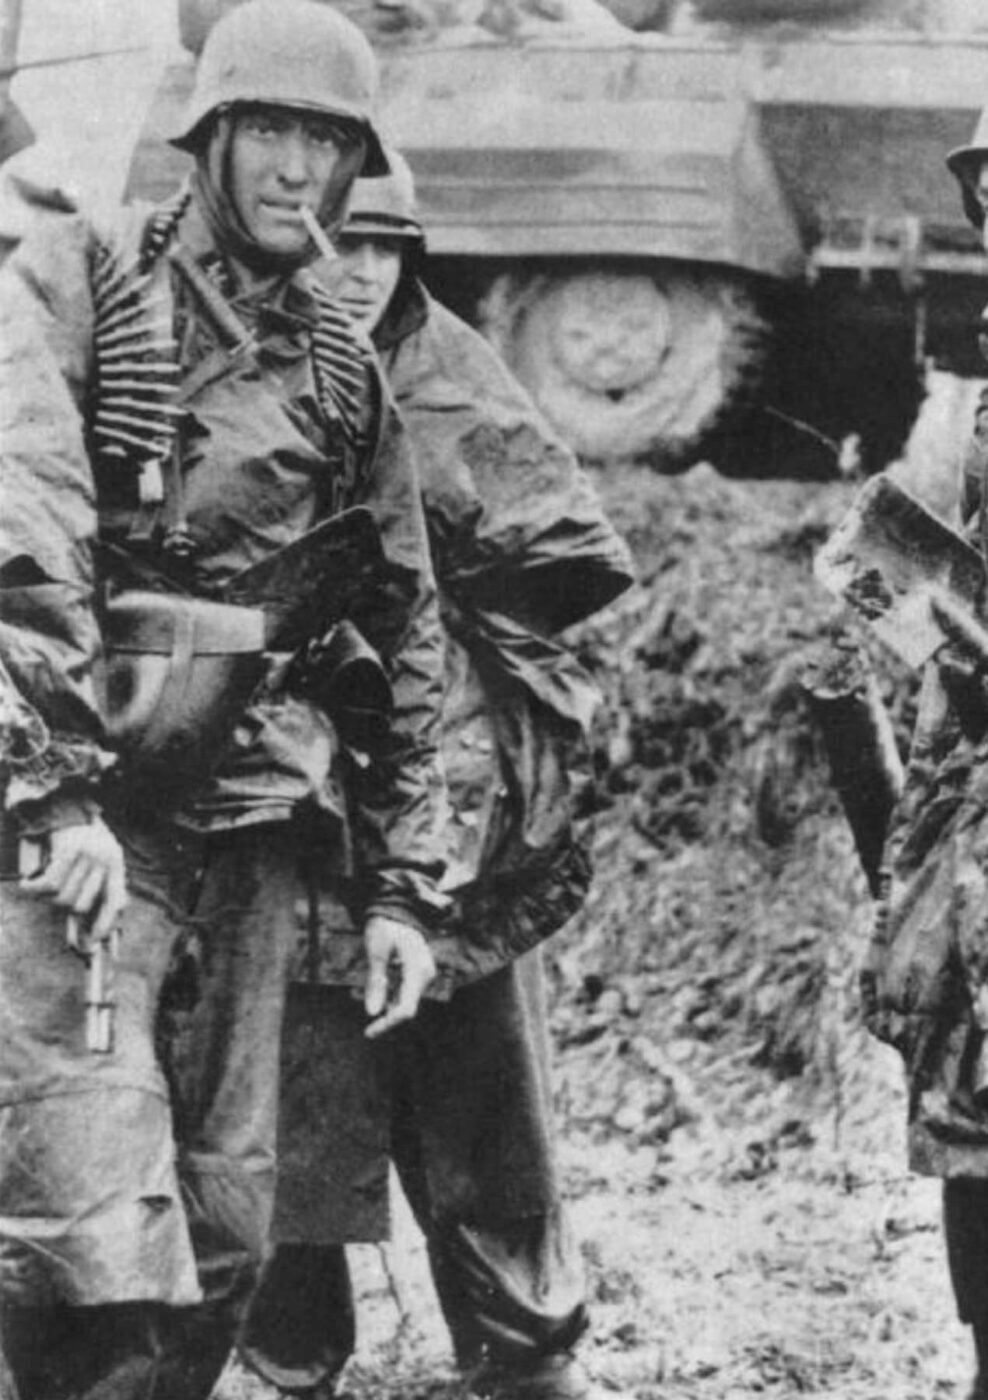 Waffen SS soldier with FN Hi-Power Pistol in WWII